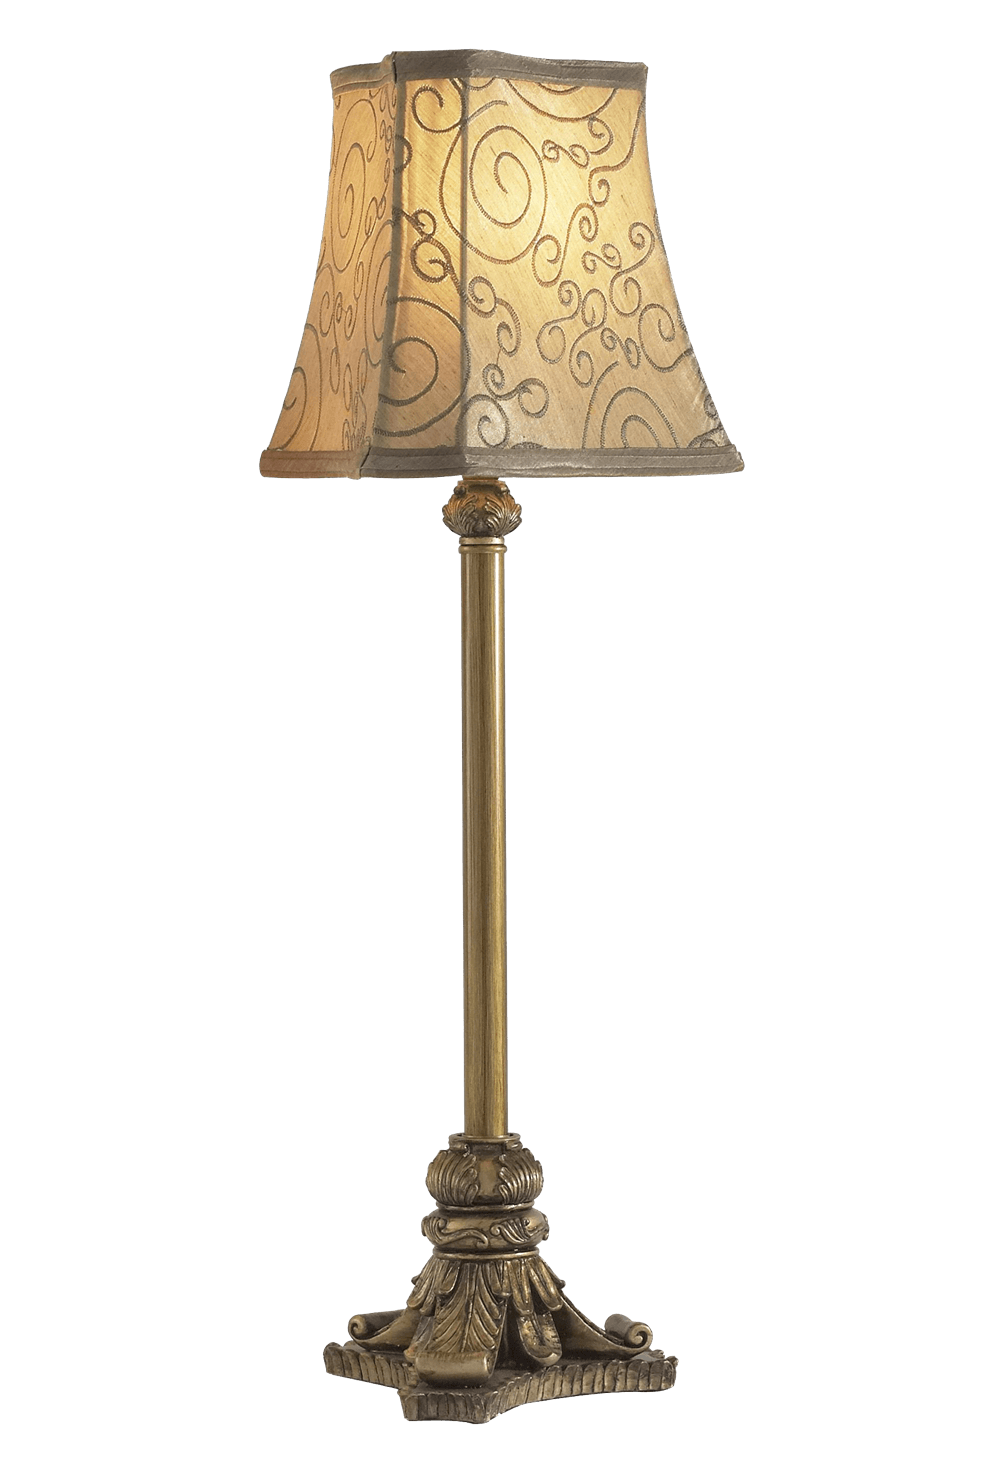 Lamp clipart lampshade. Transparent pencil and in